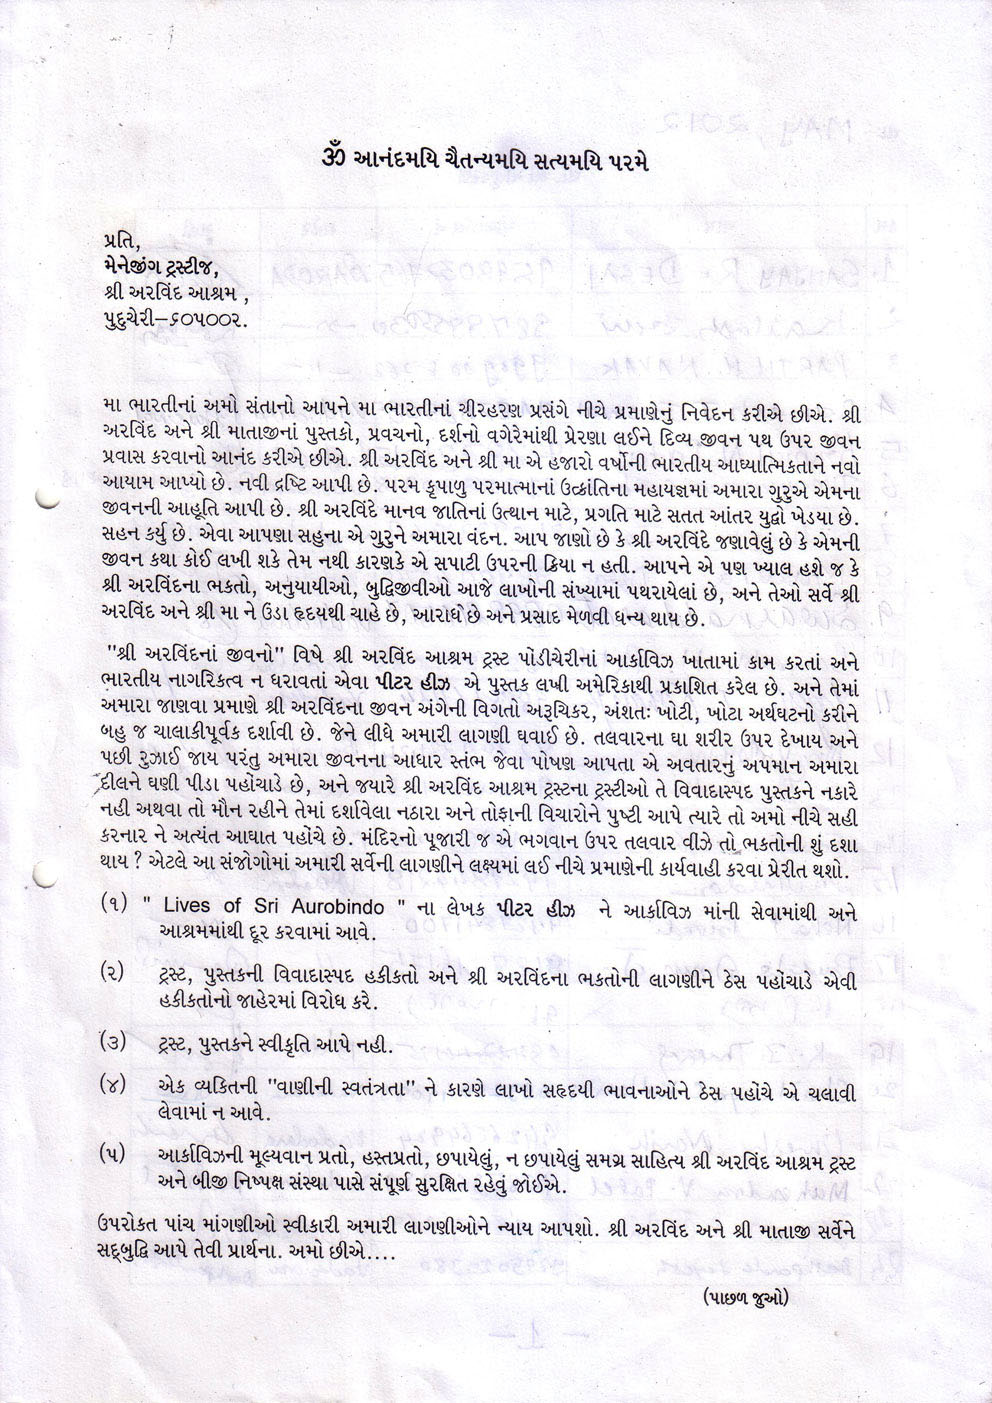 the above letter is a translation of the original letter in gujarati which was signed by 117 devotees and disciples of sri aurobindo and the mother in